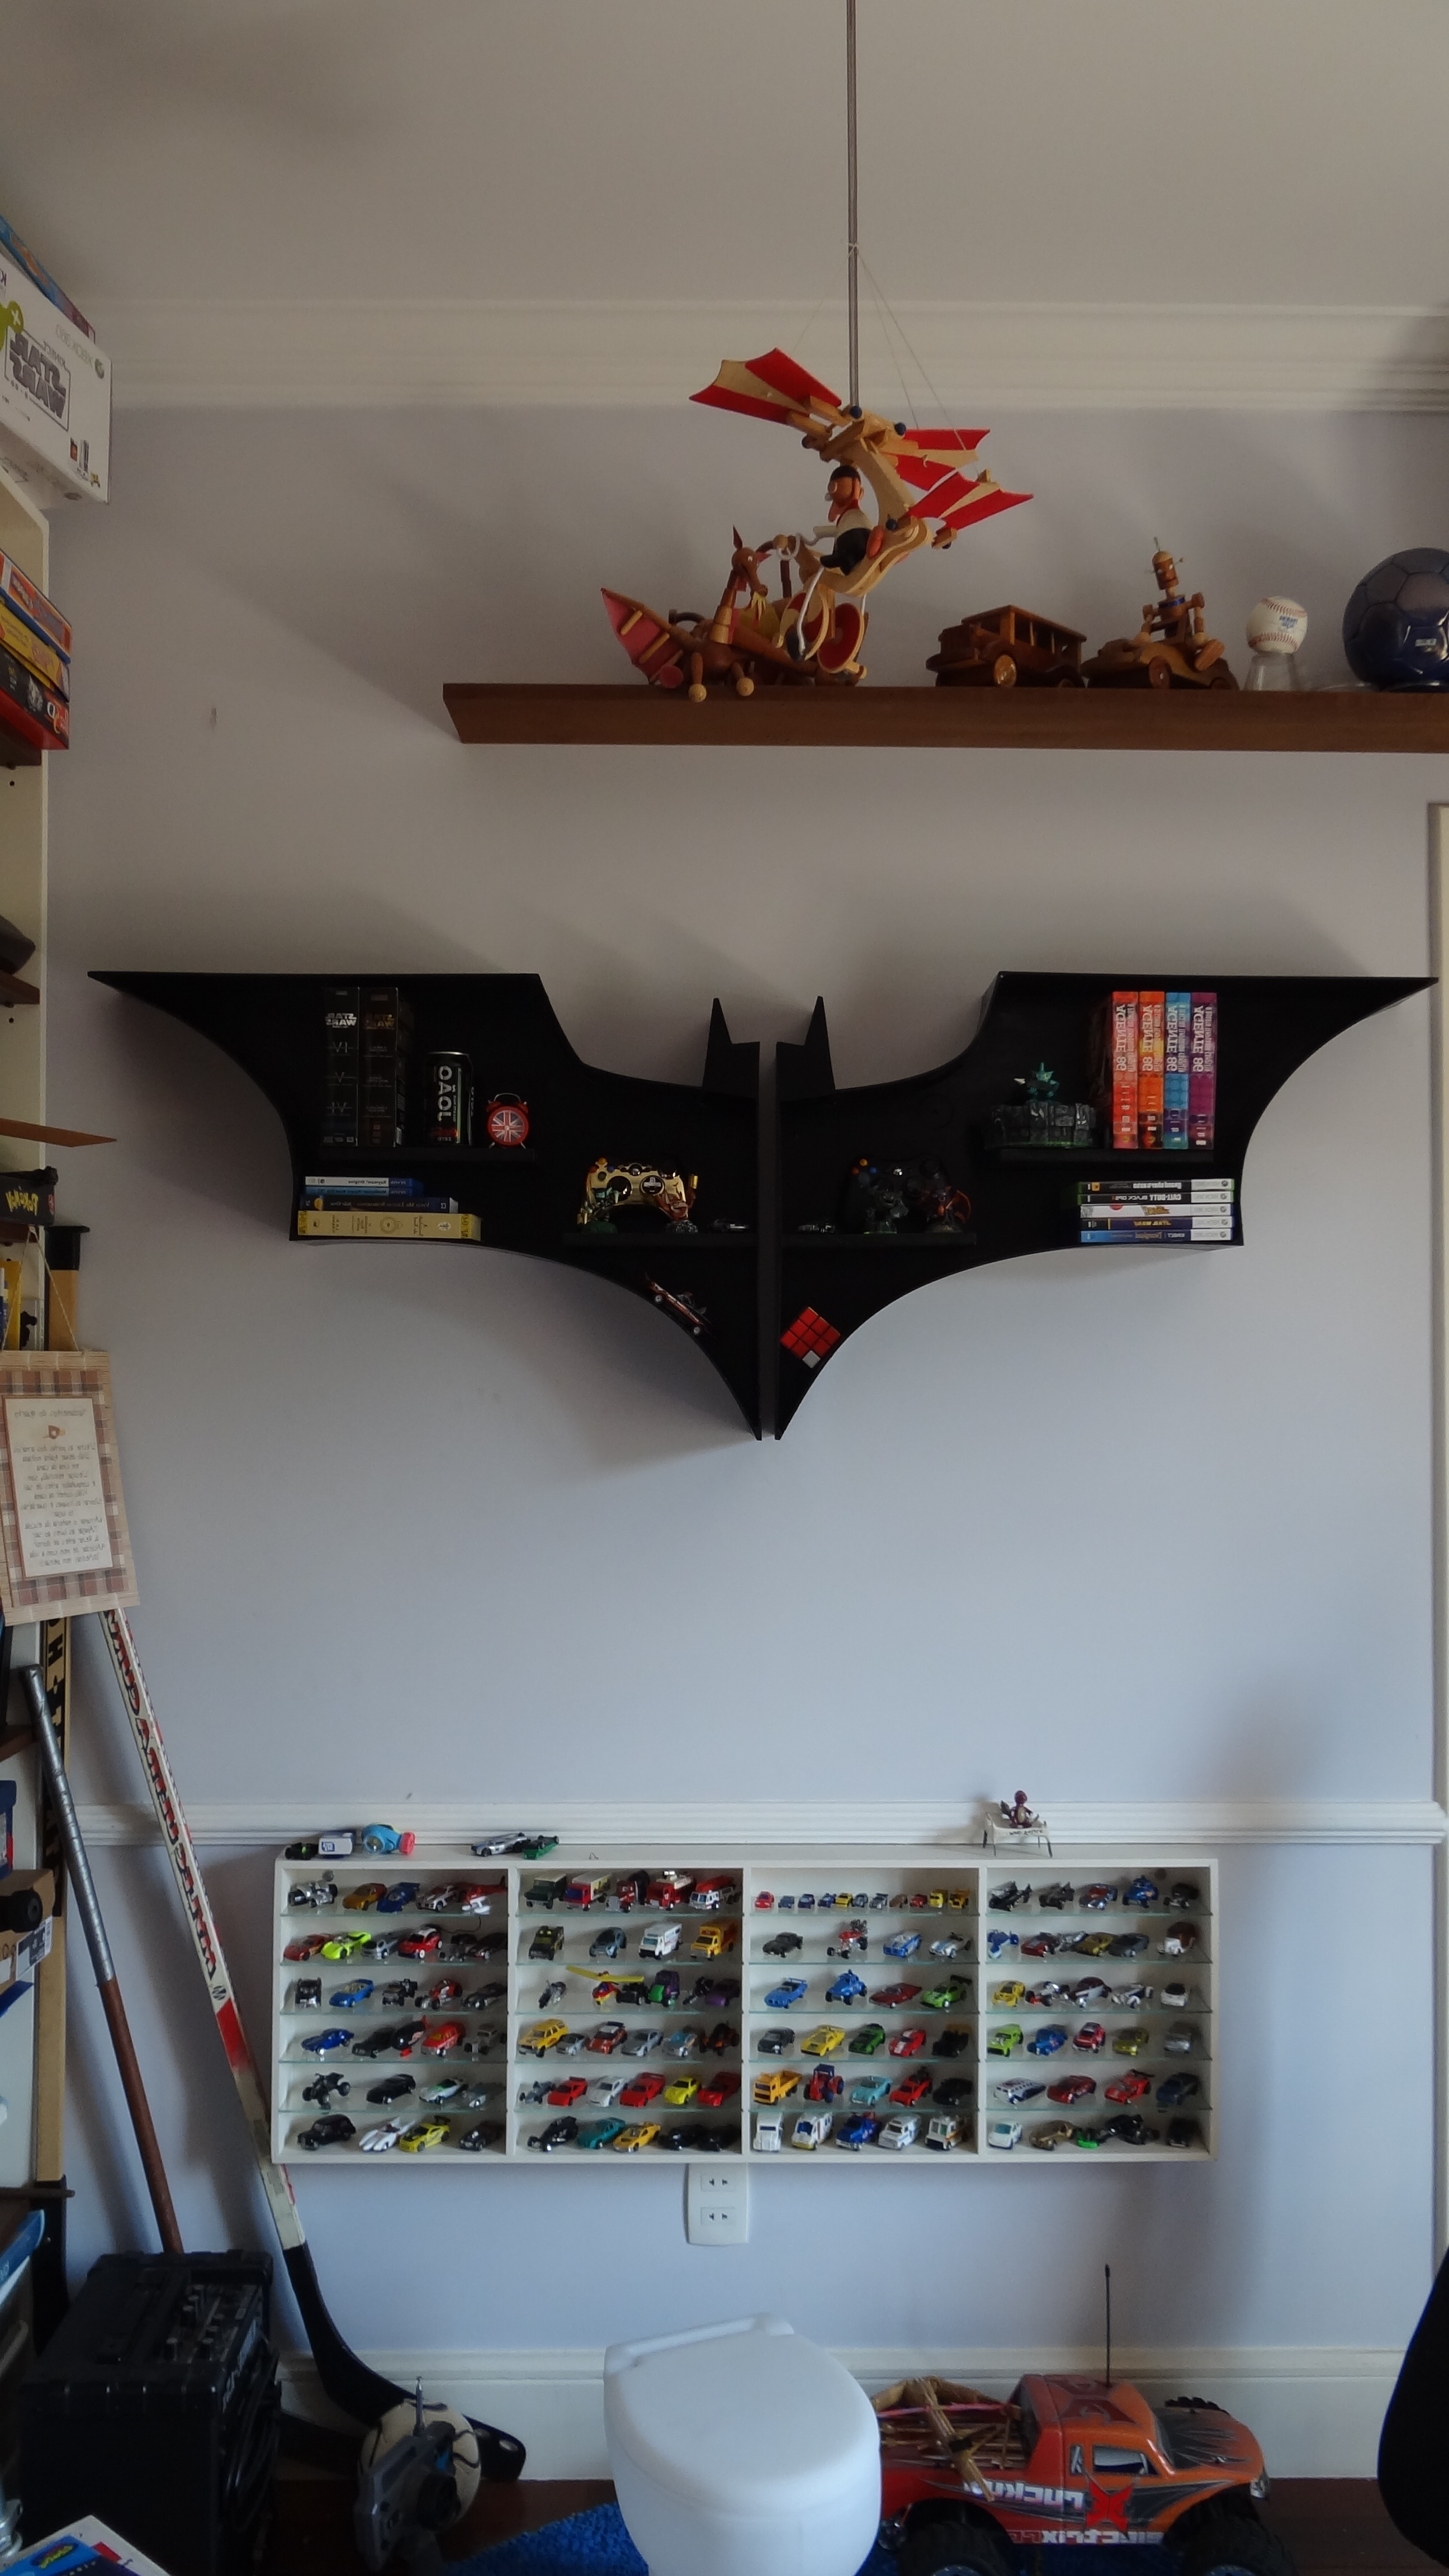 Batman Bookcases Regarding Latest Homemade Batman's Bookshelf (View 7 of 15)